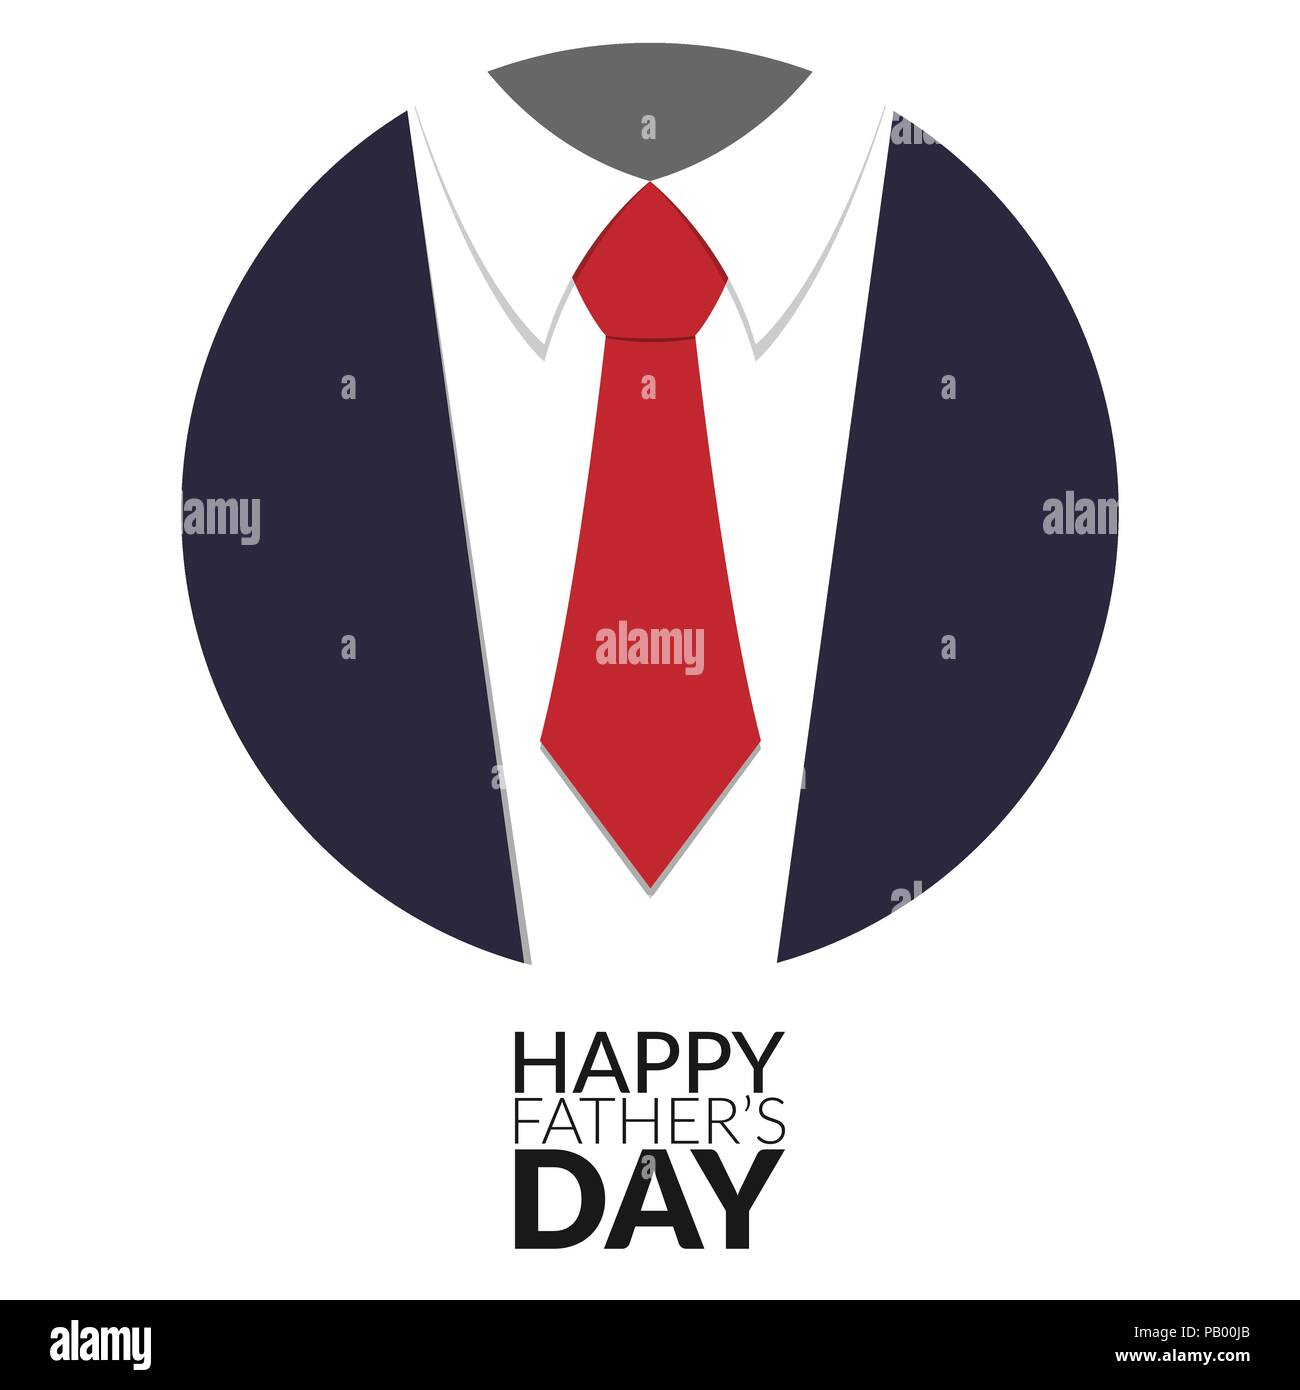 Happy Fathers Day Greeting Card Design With Suit And Big Tie In Circle Vector Illustration